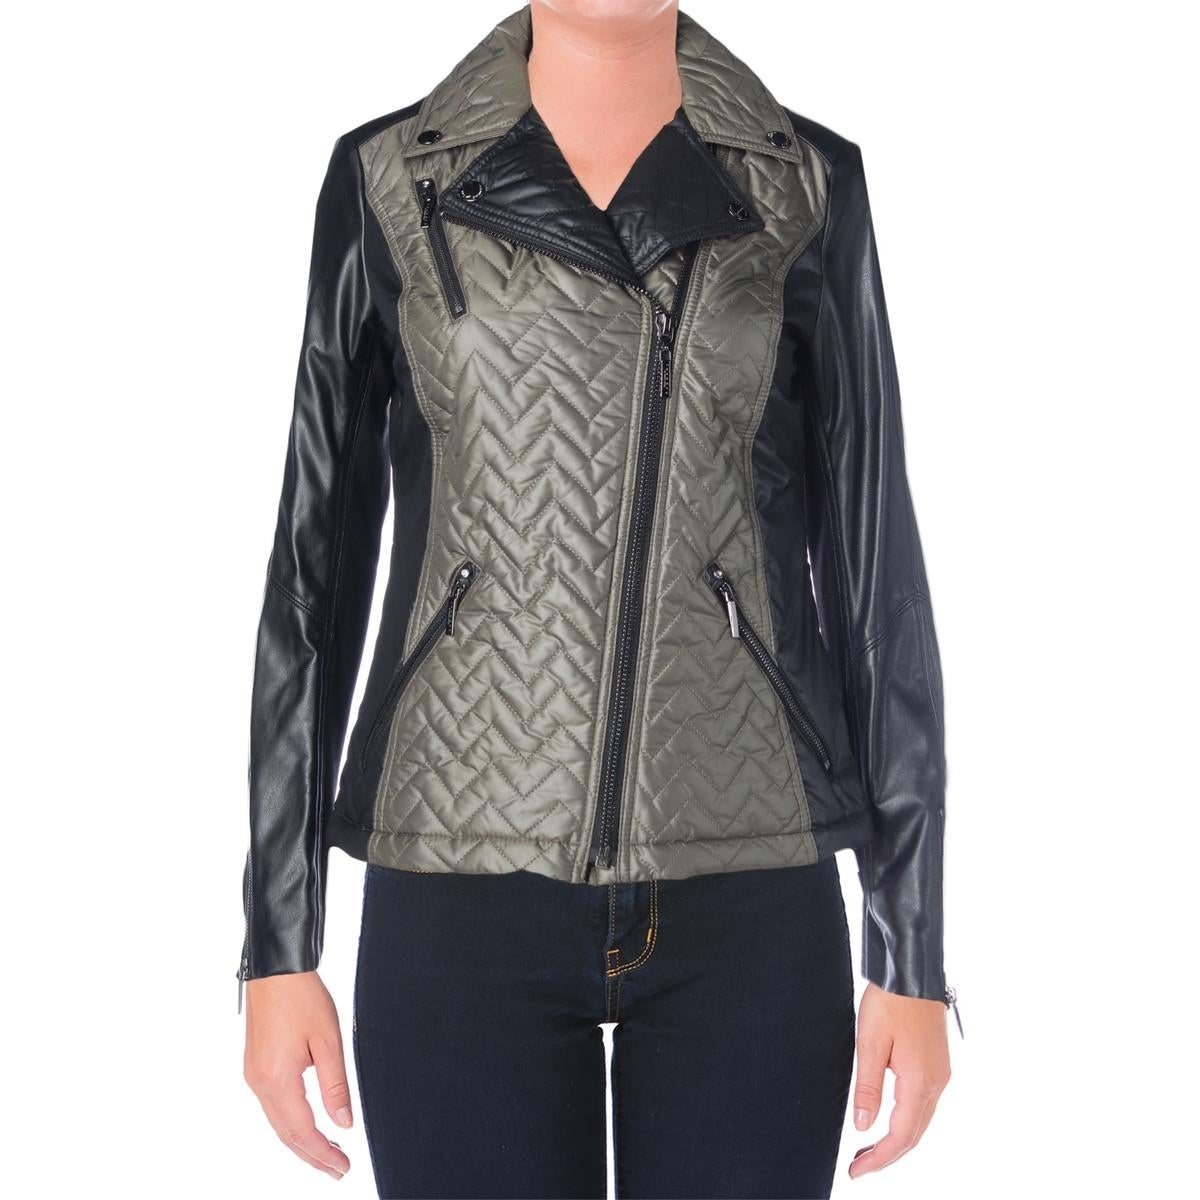 Laundry by Shelli Segal Womens Motorcycle Jacket Faux Leather Trim Zip Front - Thumbnail 0